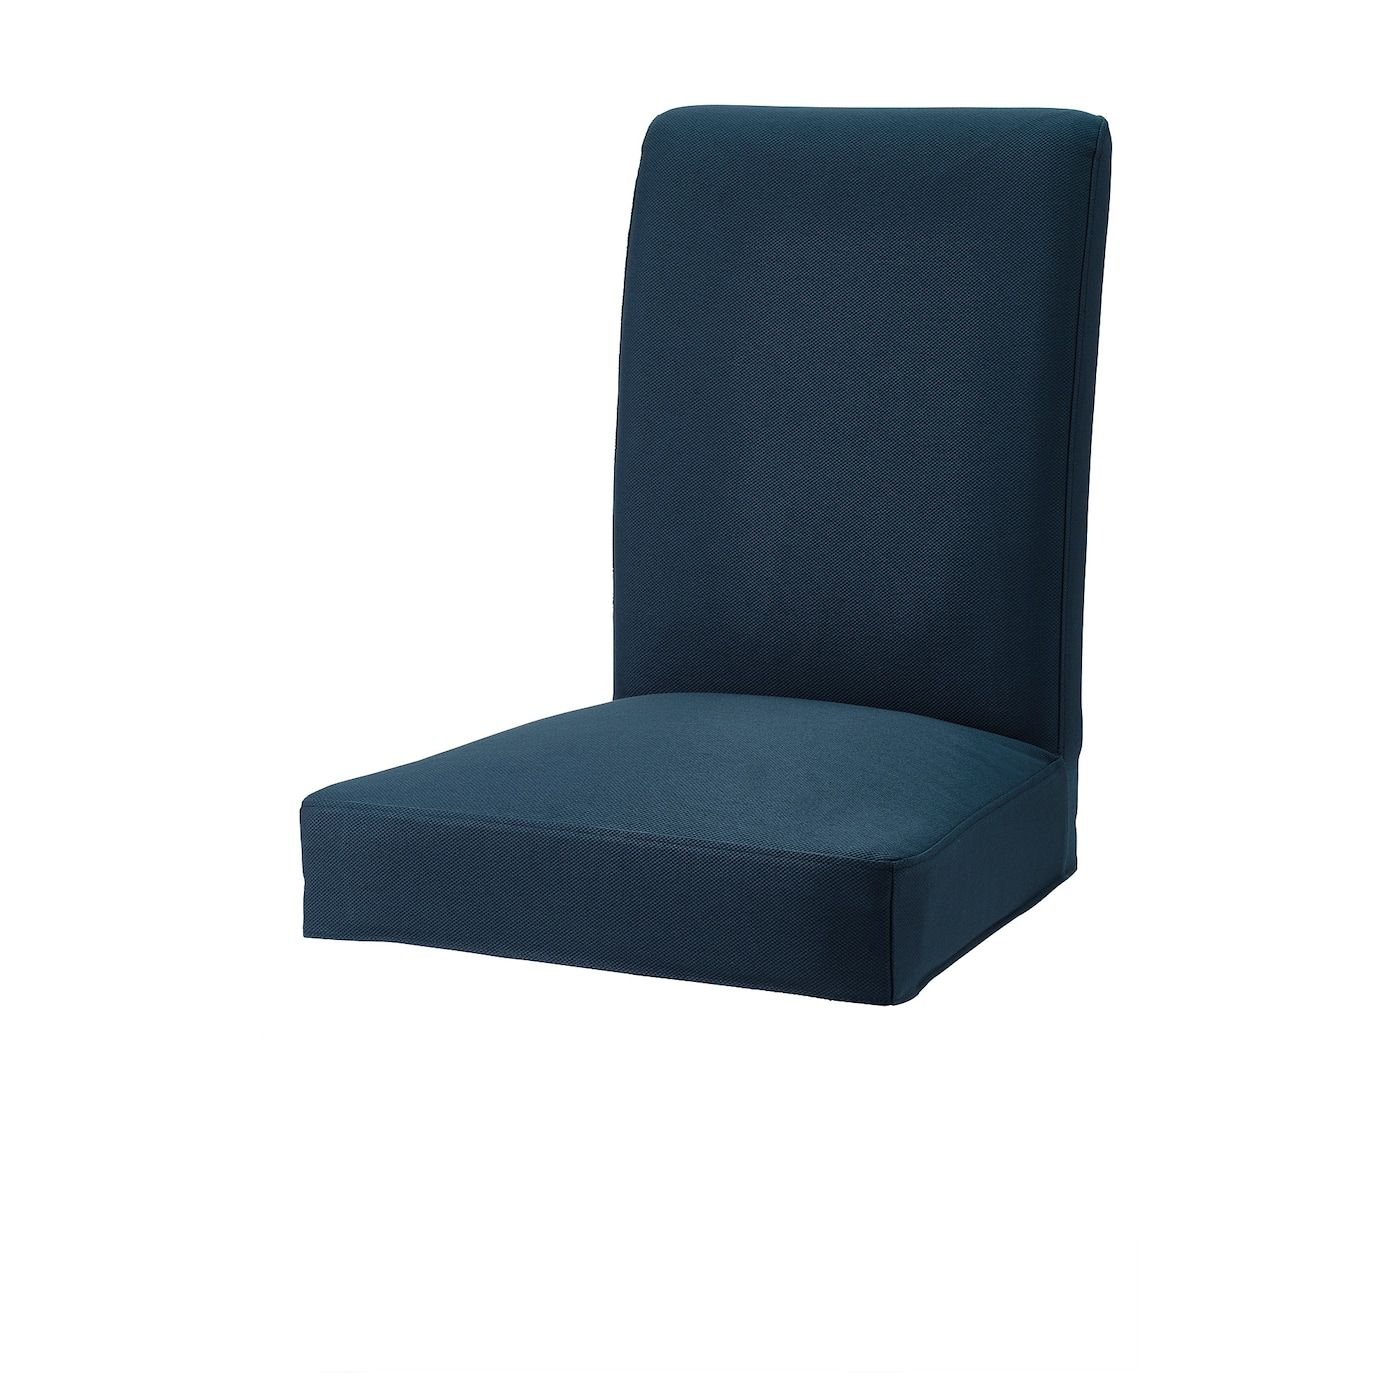 HENRIKSDAL Gräsbo blackblue, Chair cover IKEA in 2020